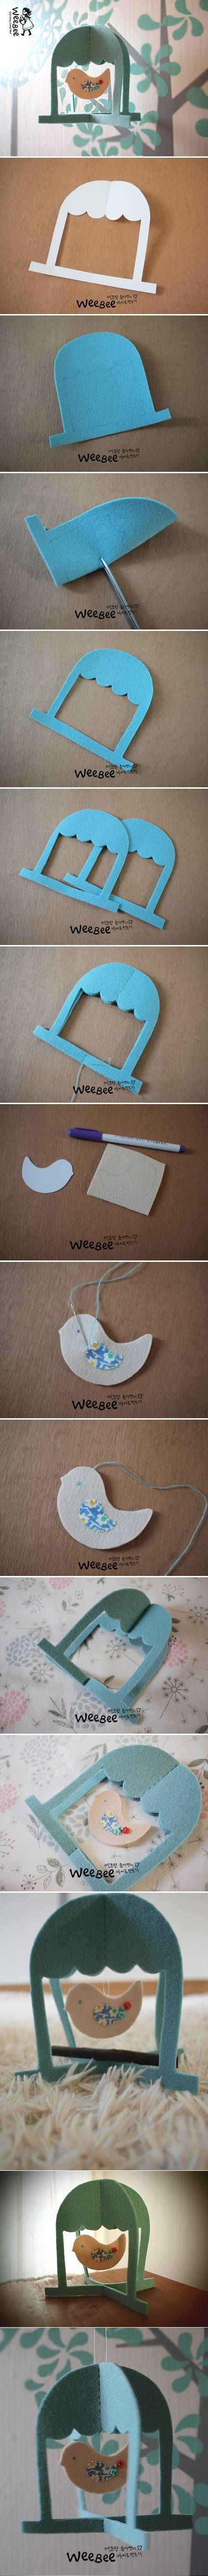 DIY Cute Felt Bird Mobile DIY Projects | UsefulDIY.com